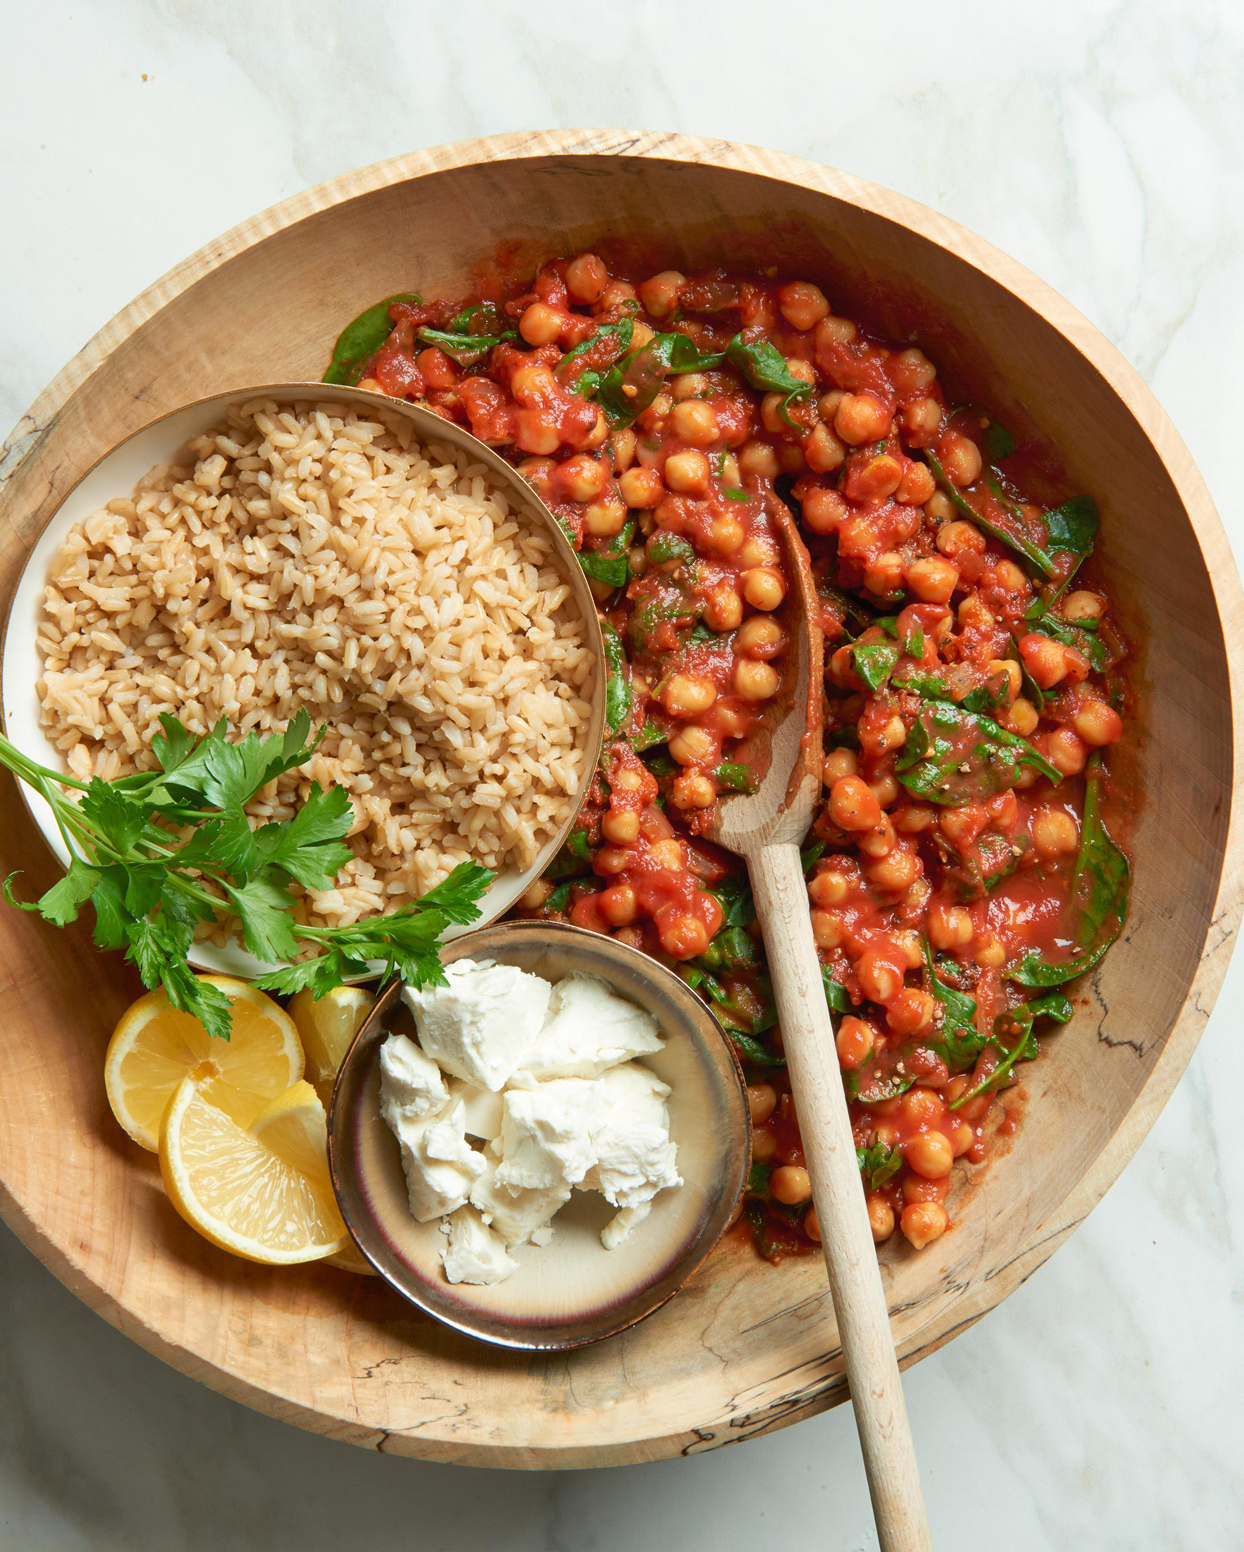 Pressure Cooker Spanish Chickpeas and Tomatoes over Rice